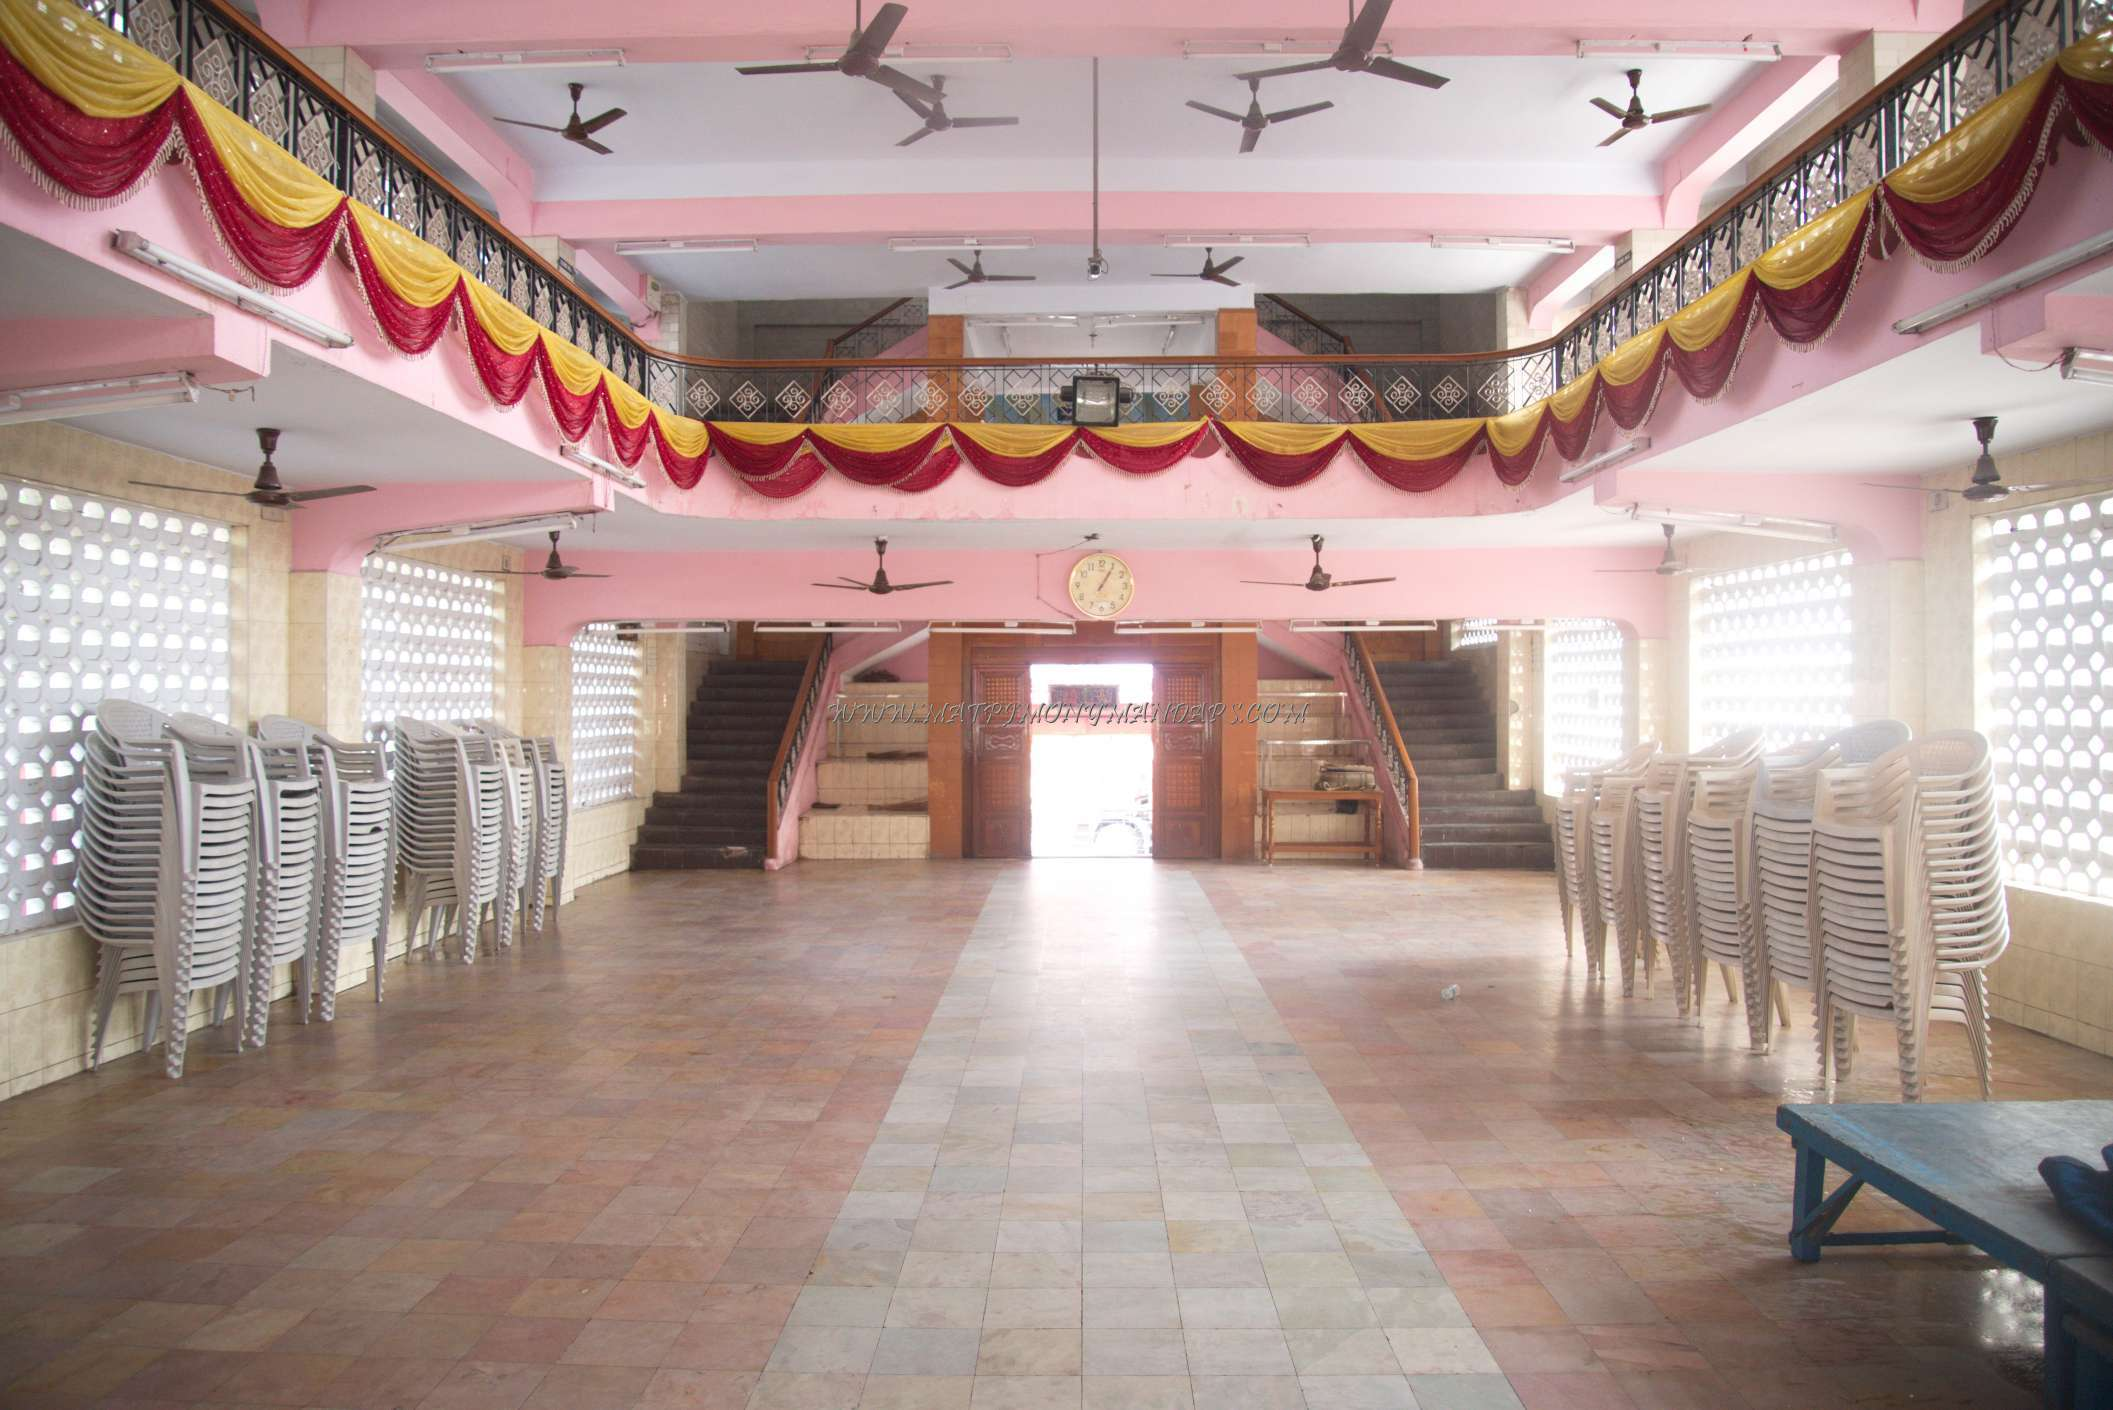 Find the availability of the VPMA Jothi Maligai in Tondiarpet, Chennai and avail special offers